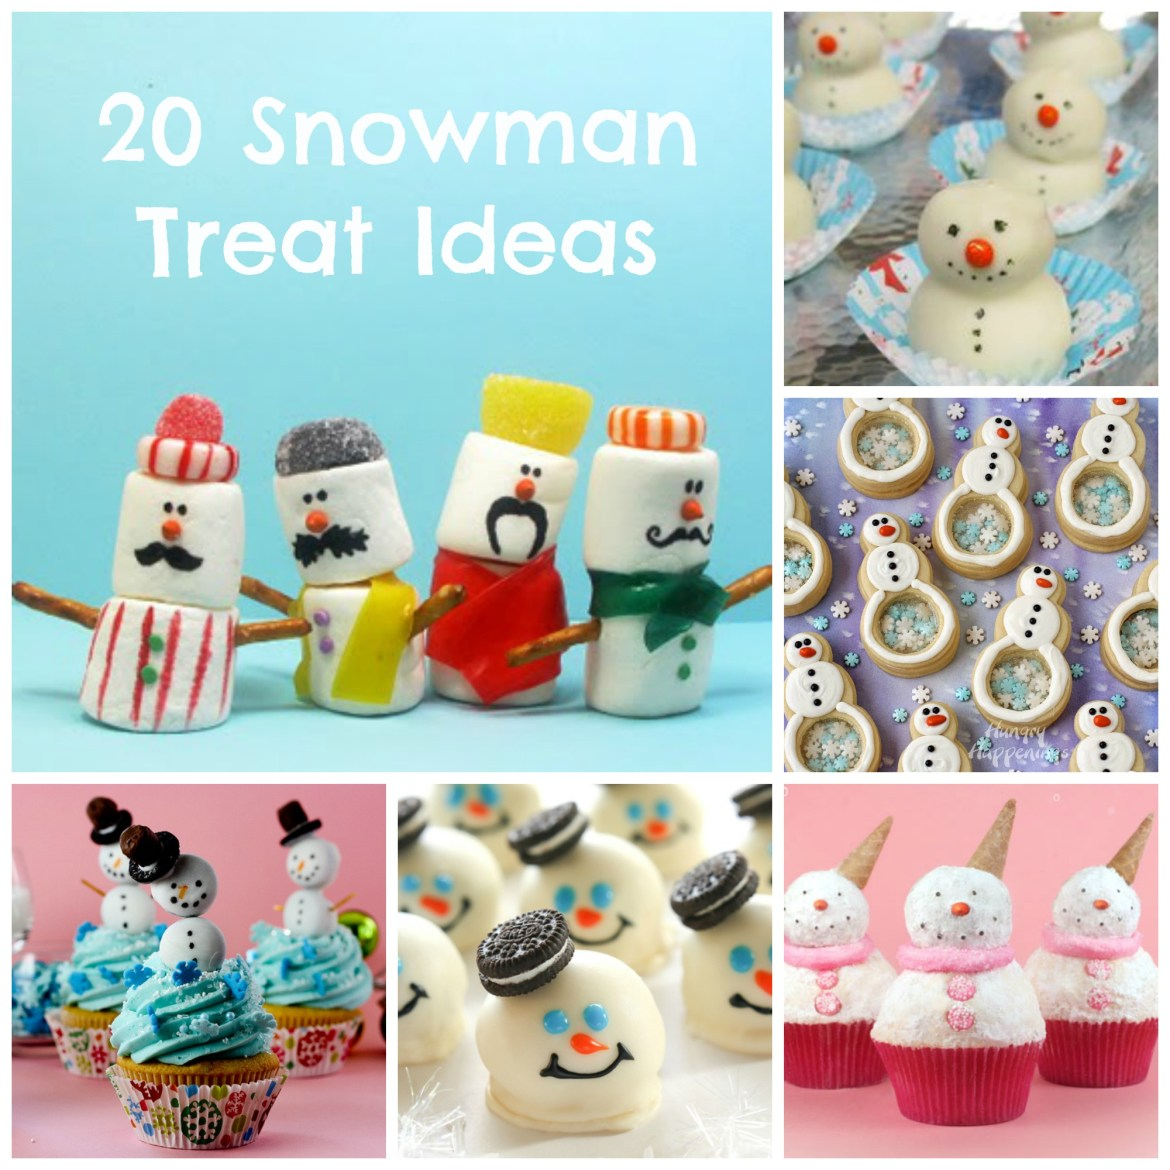 Snowman Treat Ideas